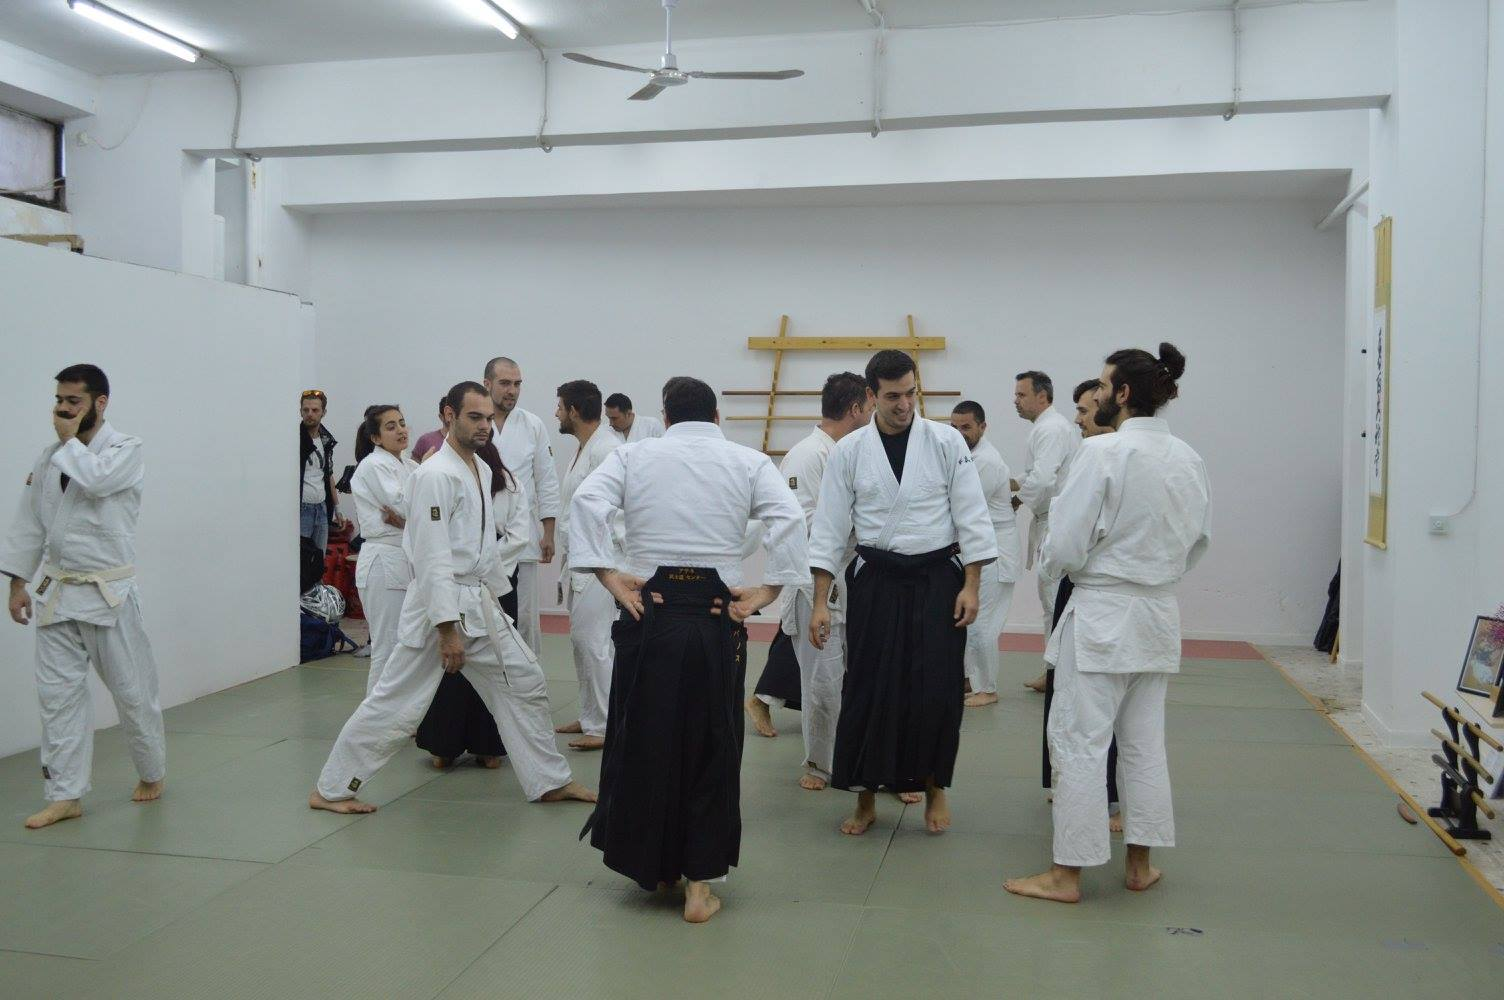 abc common aikido practice1